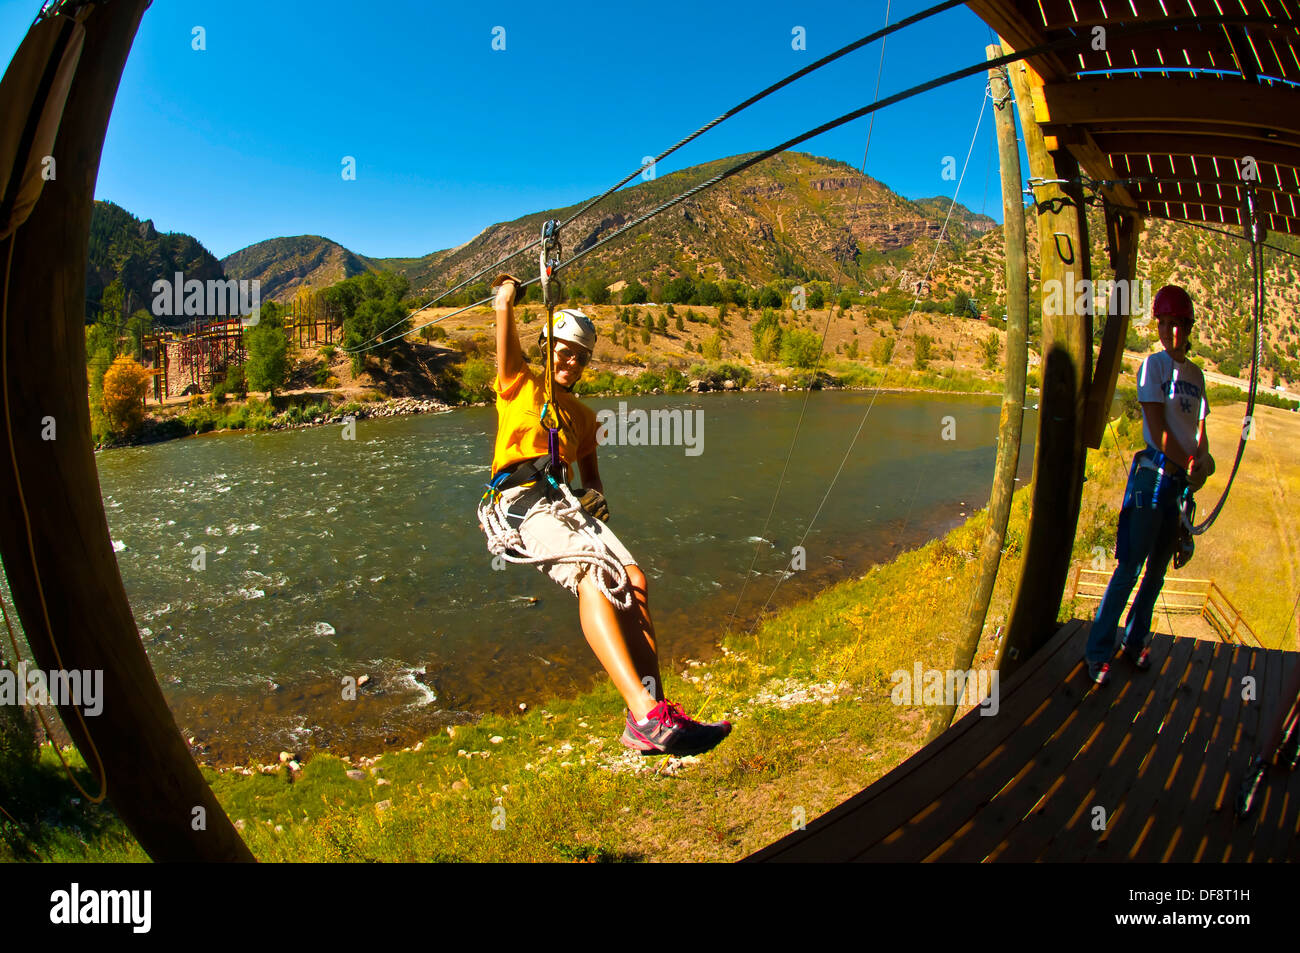 Ziplining over the Colorado River, Glenwood Canyon zipline adventures, Glenwood Springs, Colorado USA - Stock Image